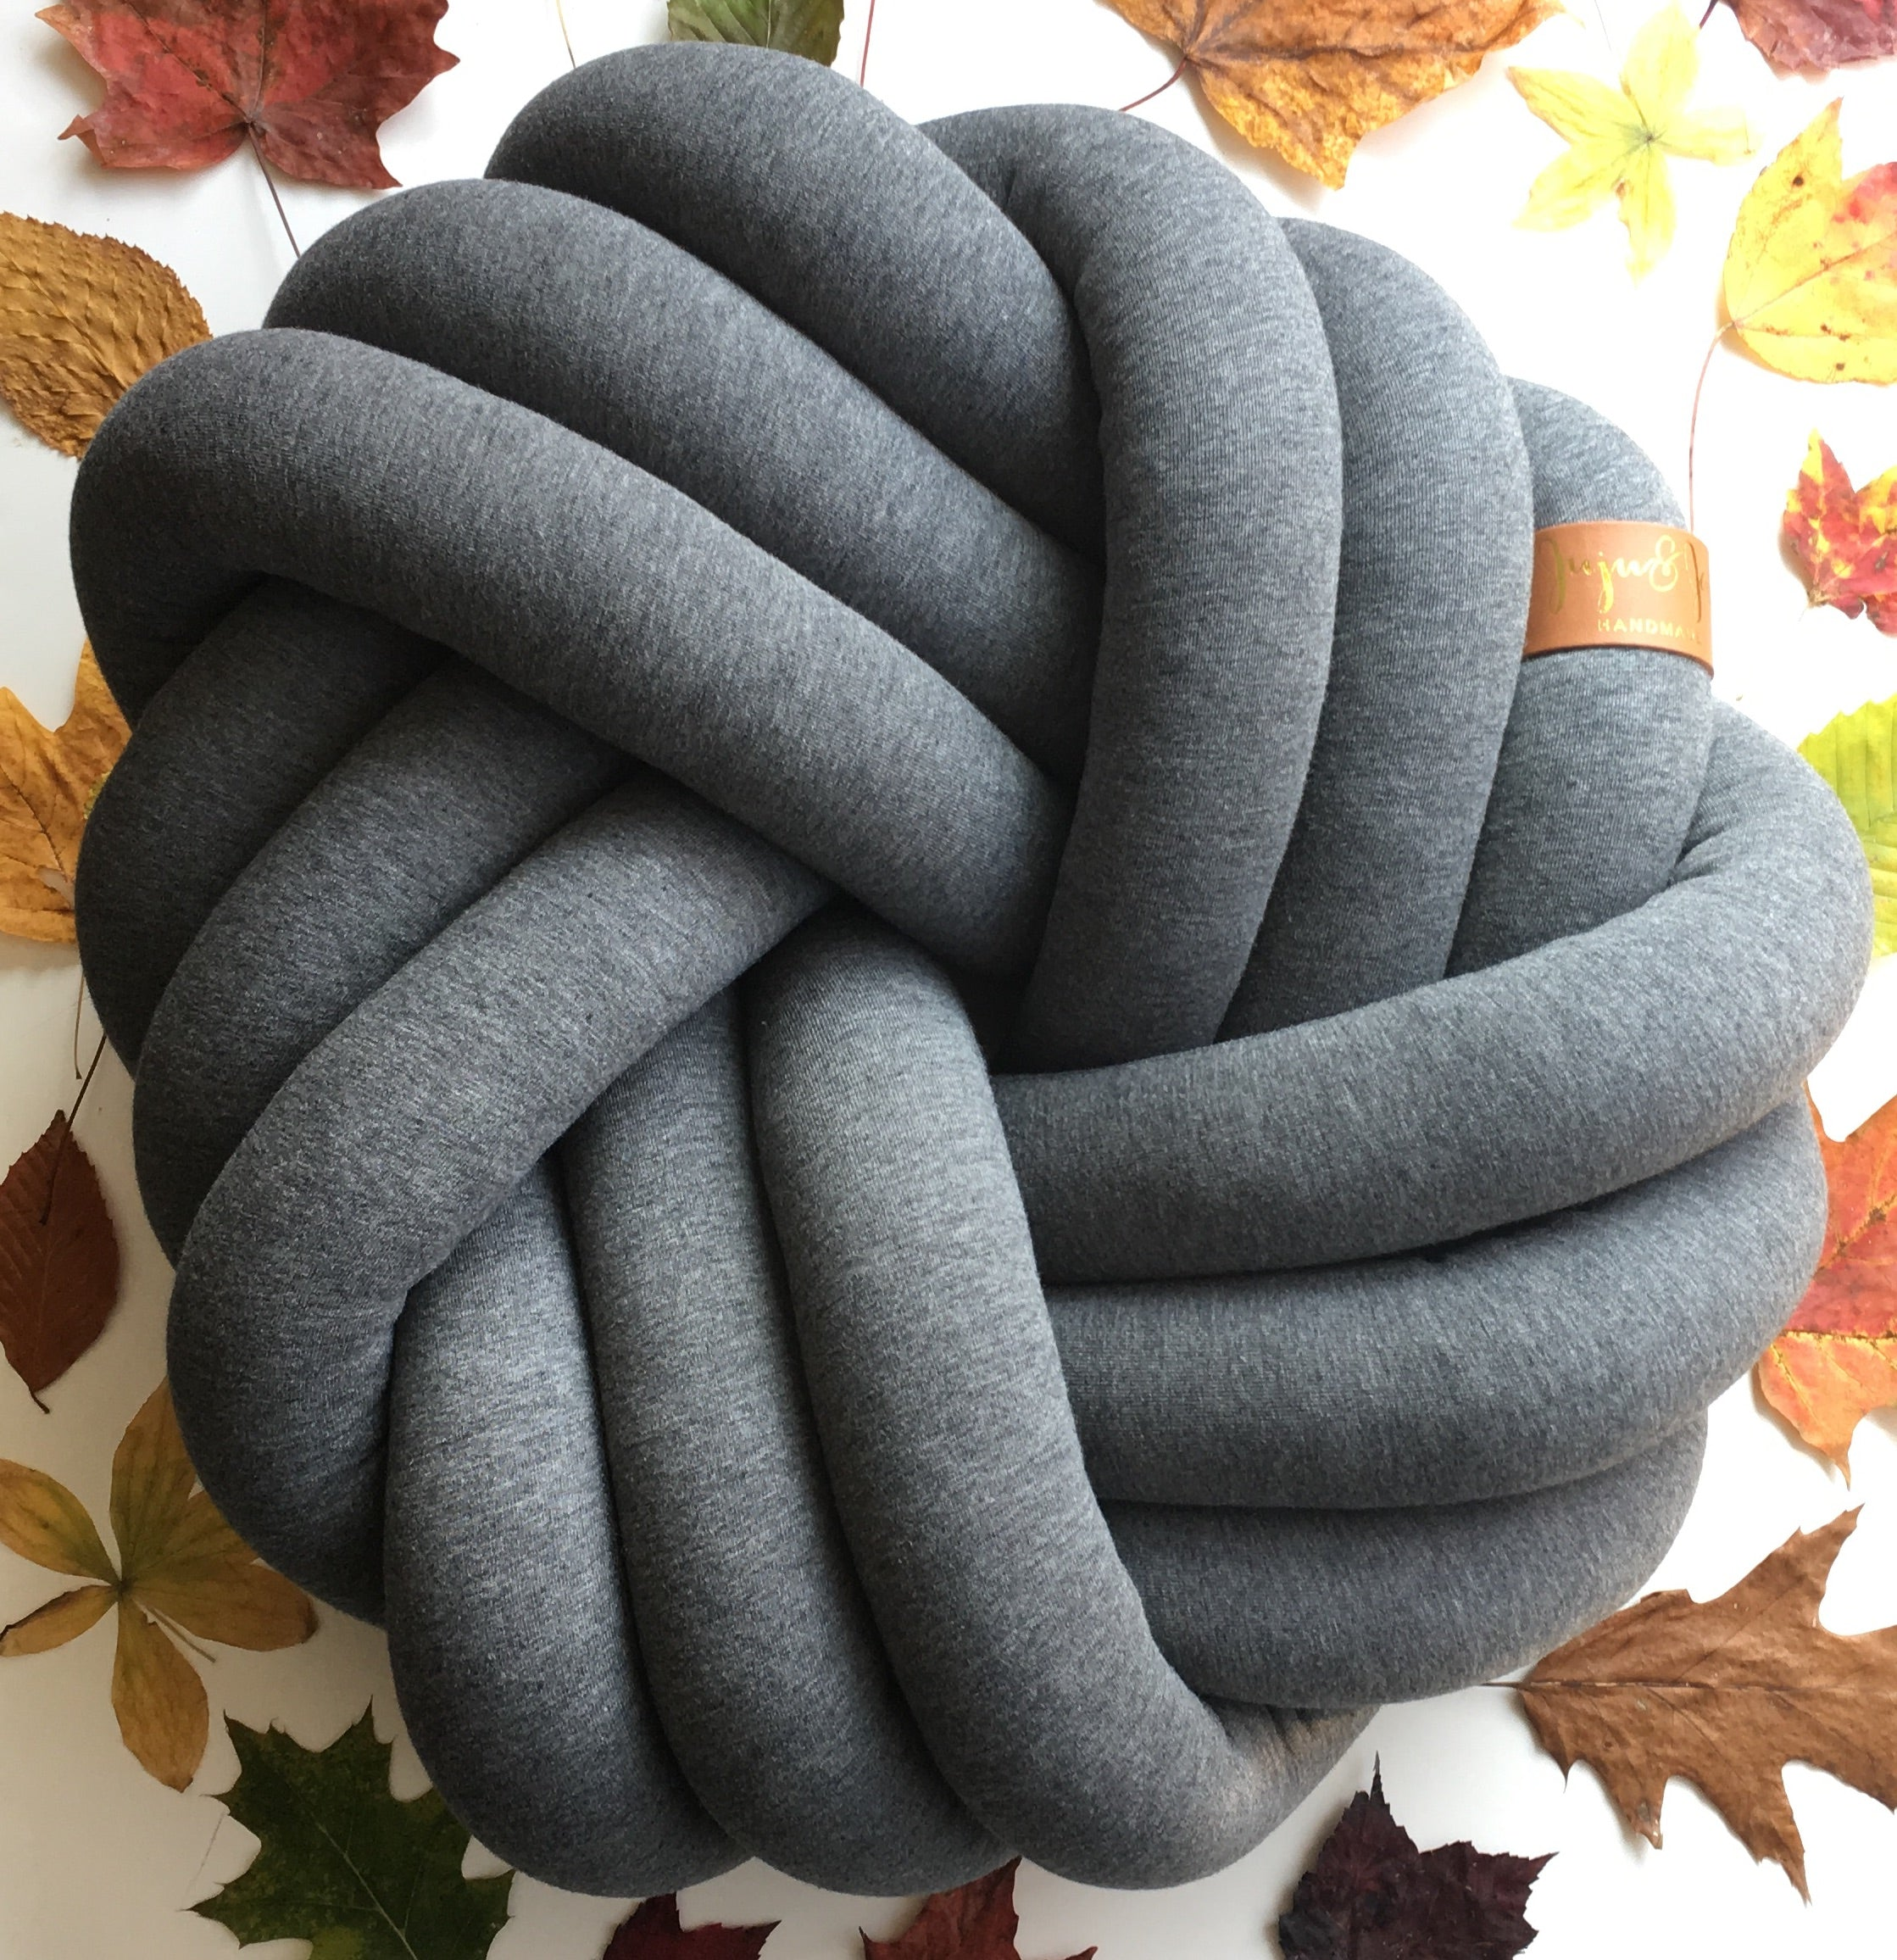 Dark Grey | Kids Floor Knot Cushion / Floor Pillow - See more Kids Knot Pillows & Cushions at JujuAndJake.com